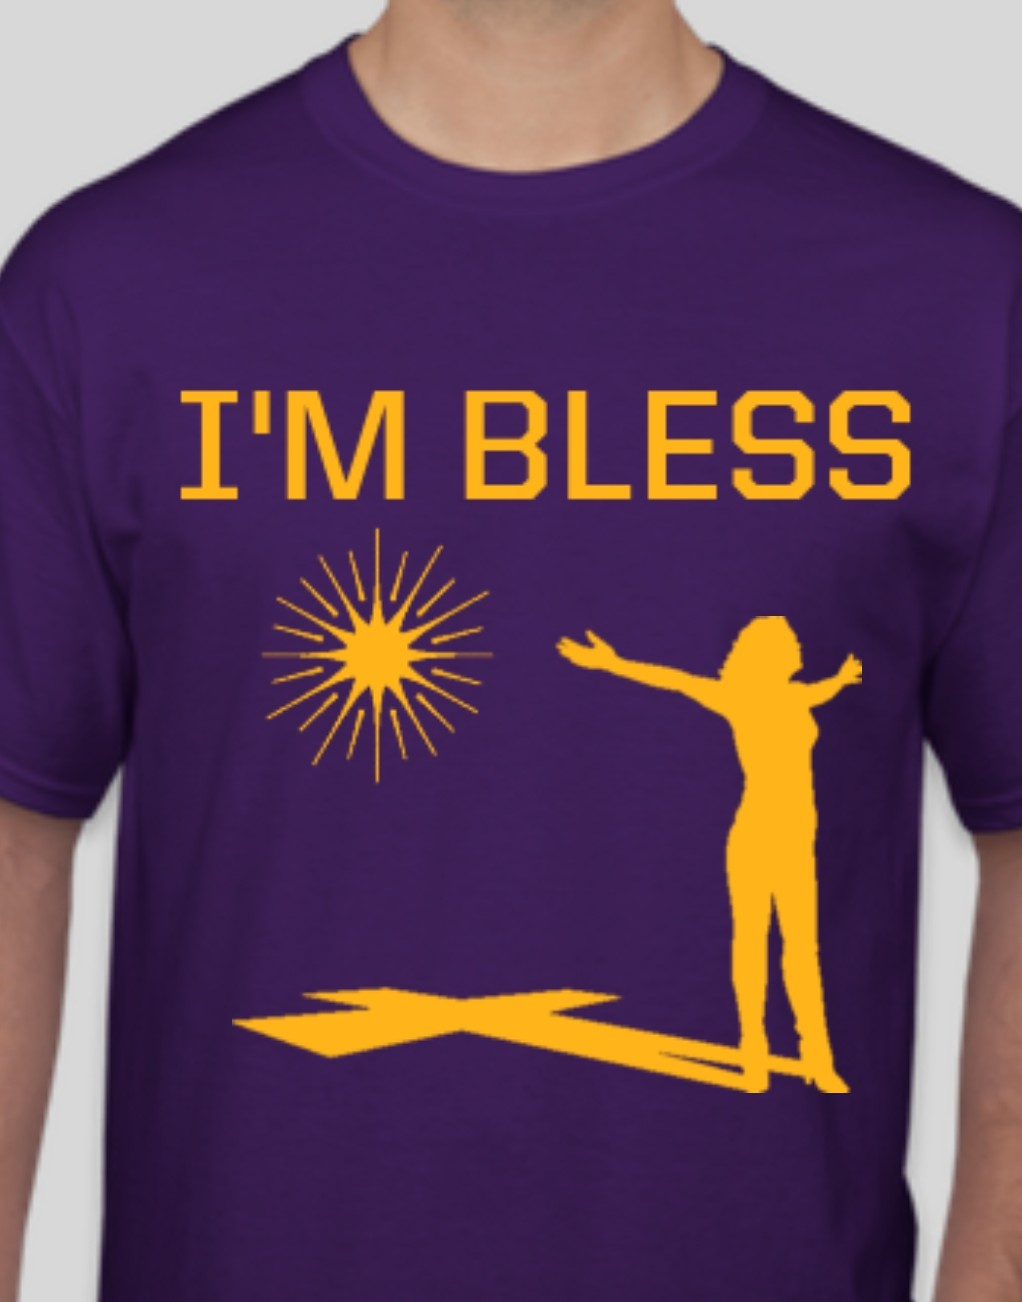 Women's I'm Bless Purple and Gold T-shirt